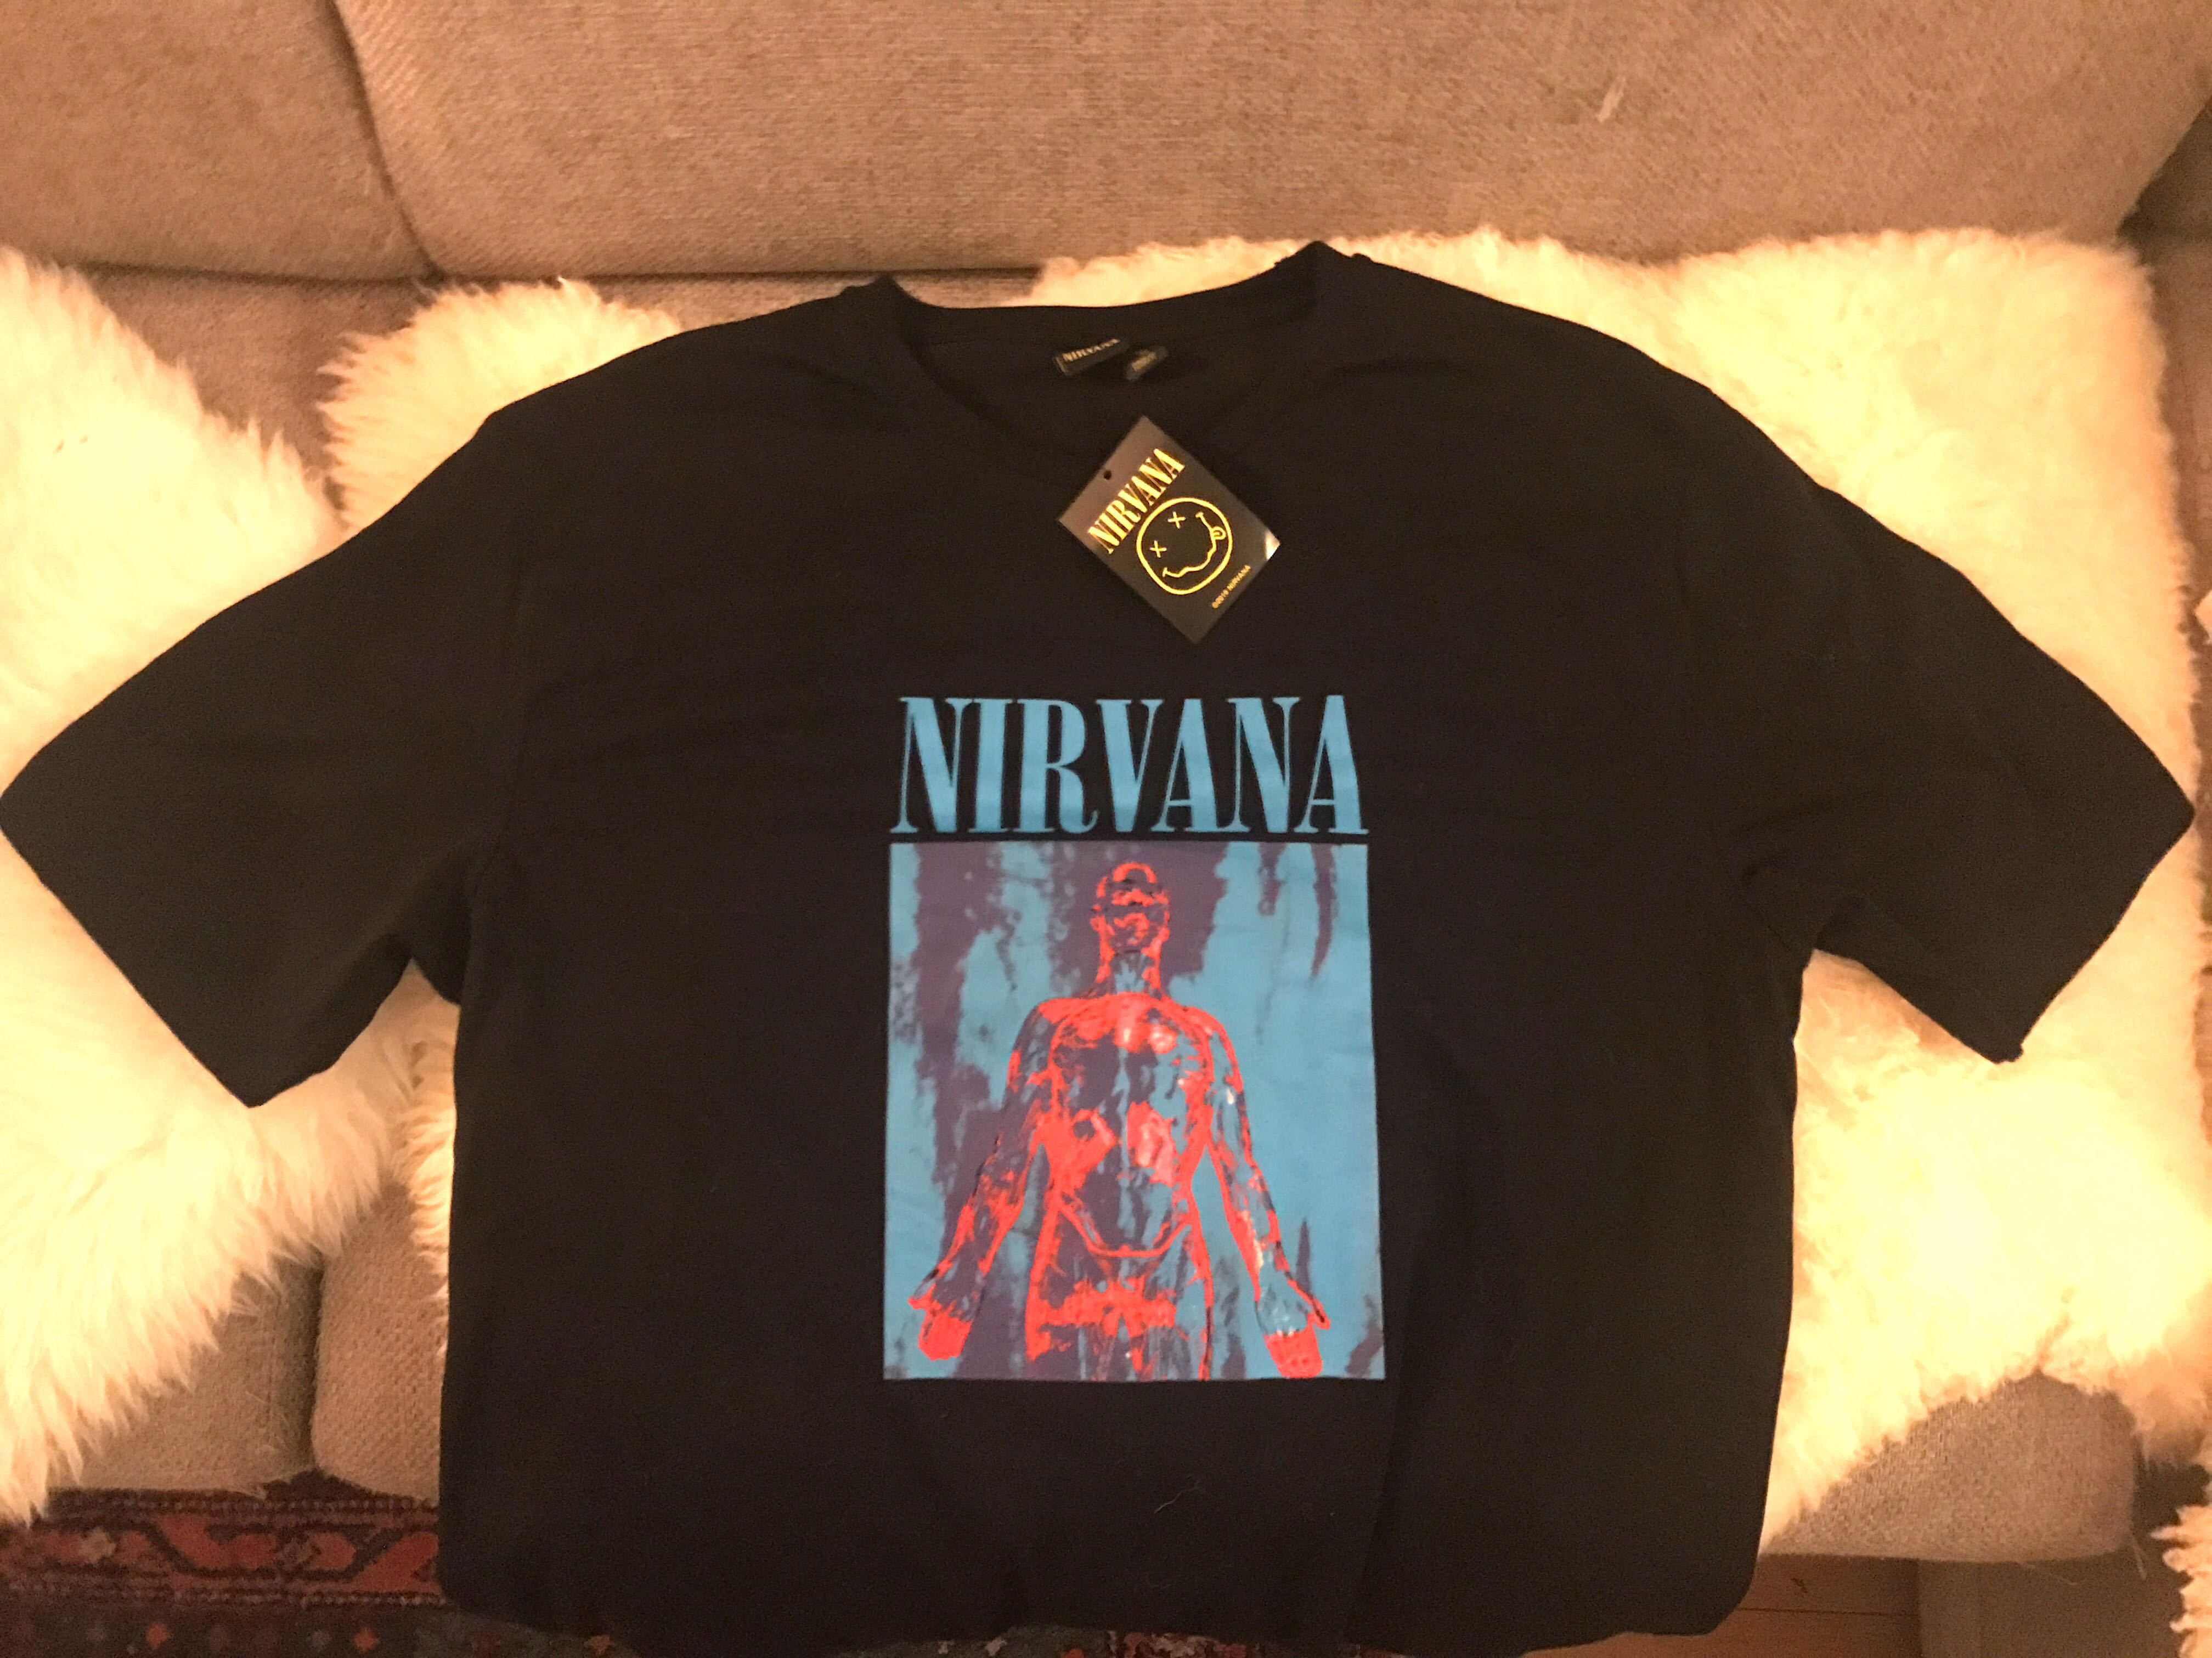 fd22c0ecd Vintage Nirvana Tee Shirt Size M, Men's Fashion, Clothes, Tops on Carousell